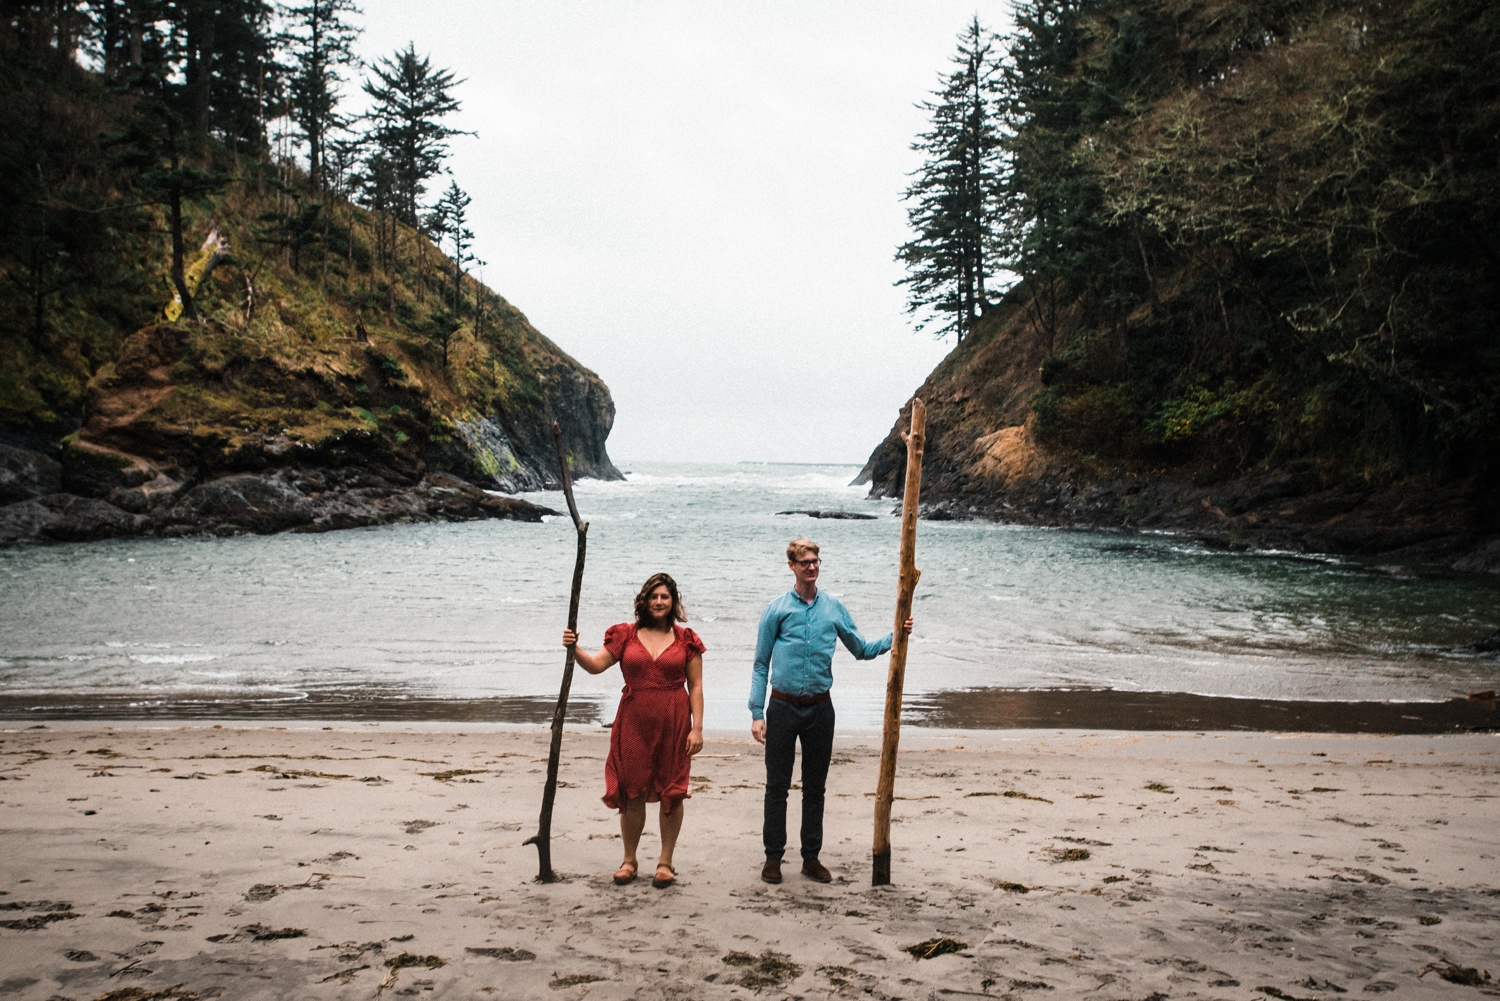 Cape_Disappointment_Engagment_Kailey_Alex_The_Foxes_Photography_107.jpg